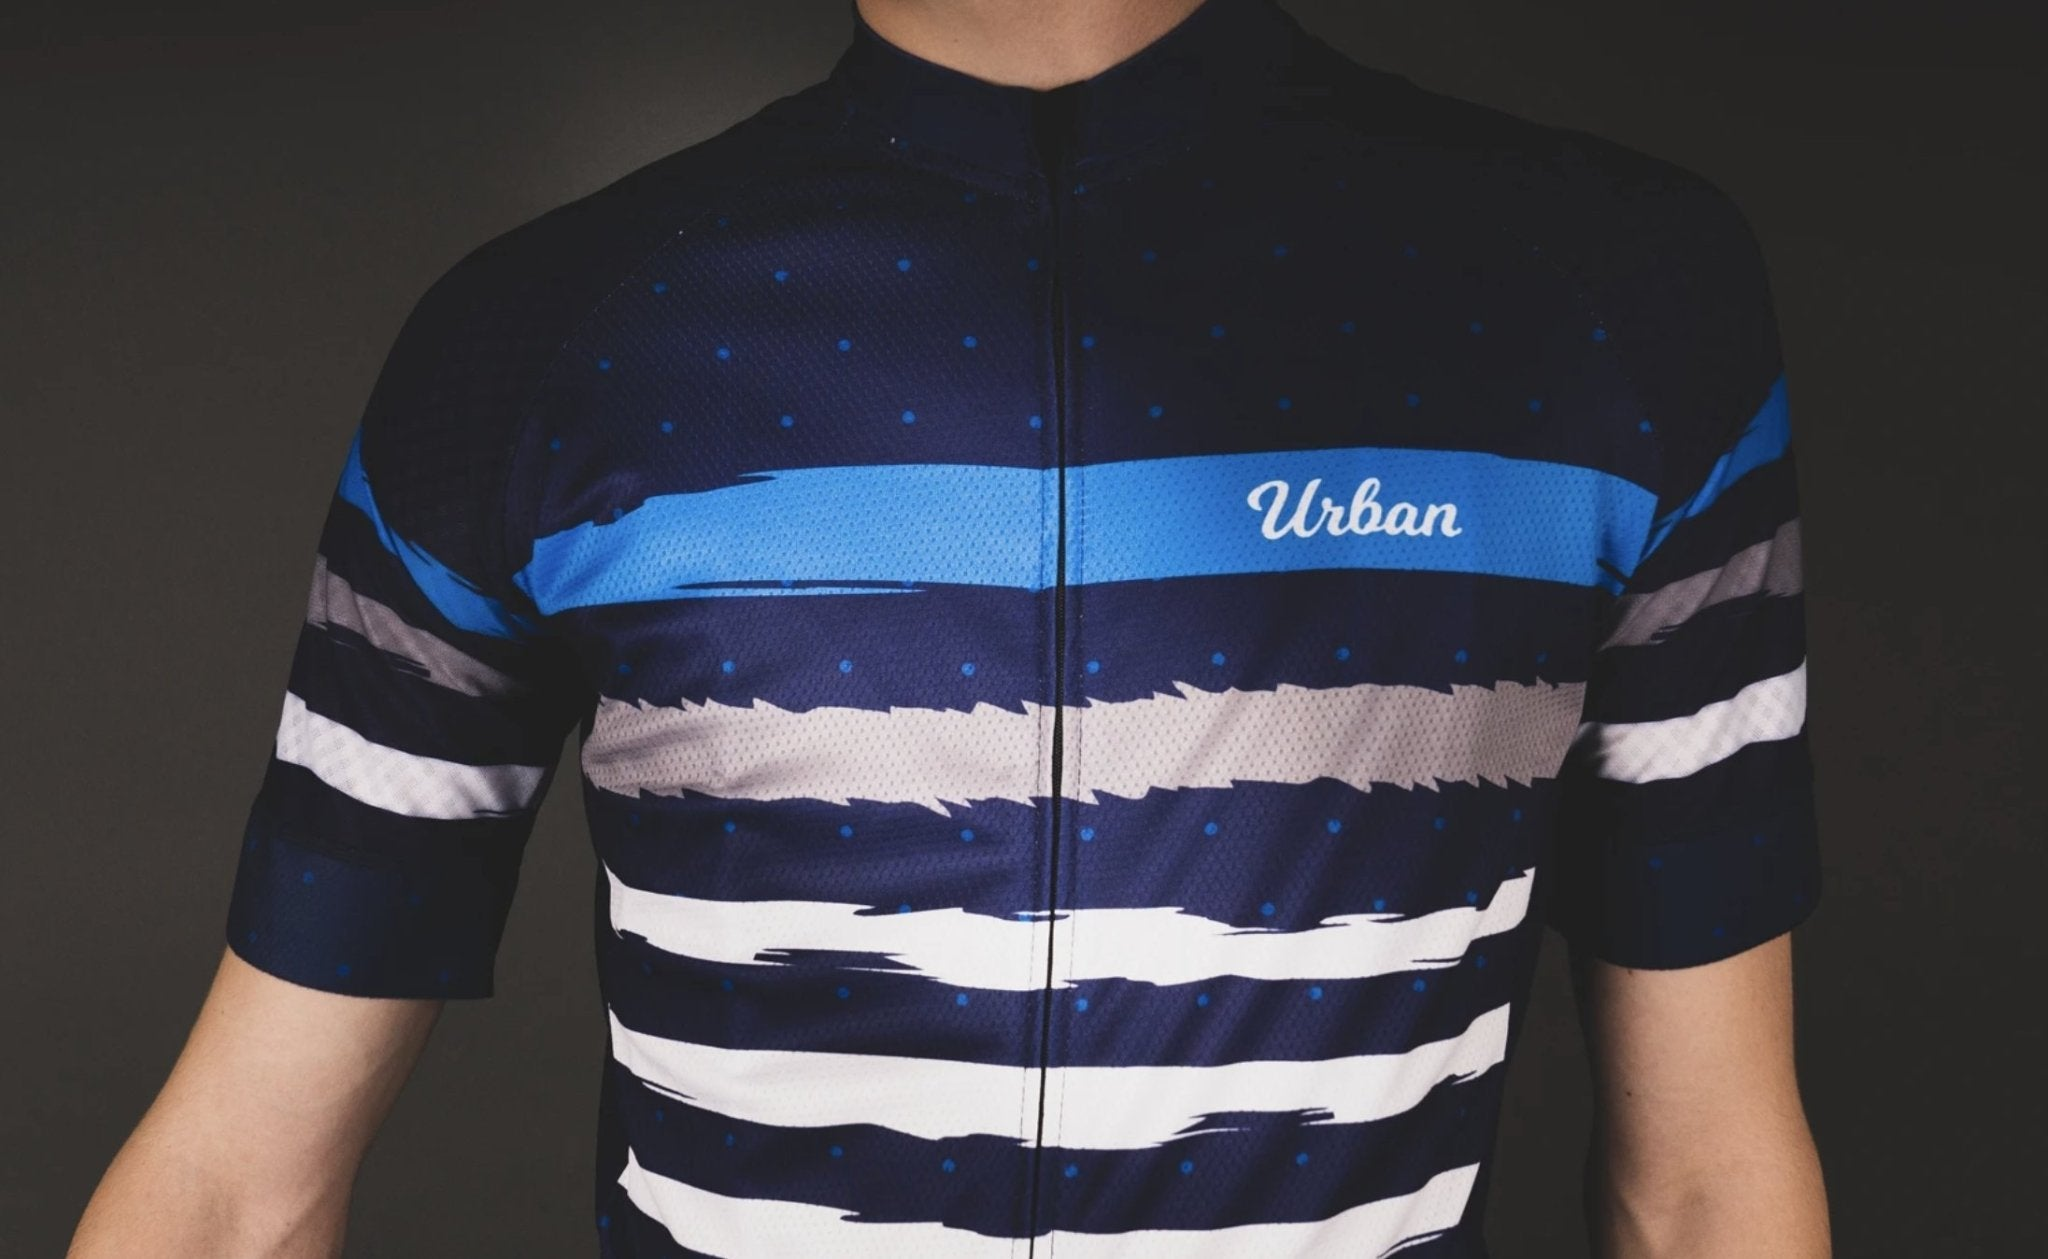 Men's Road Cycling Apparel | Urban Cycling Apparel